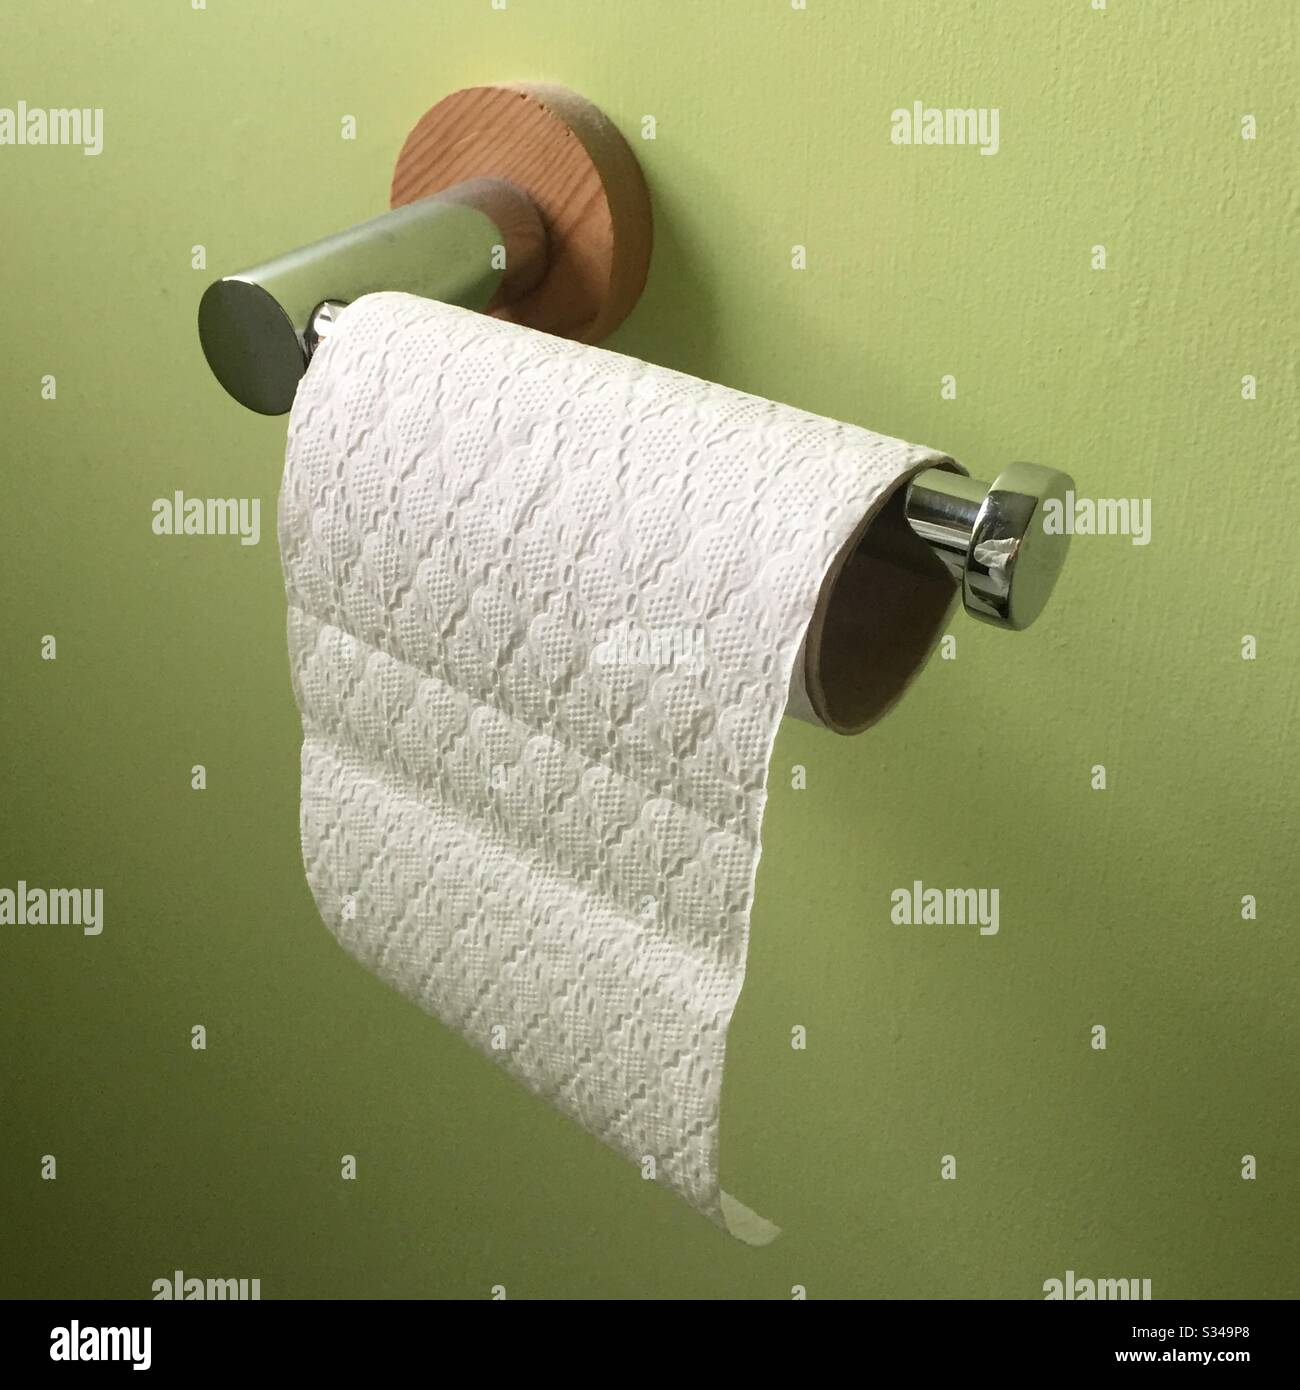 toilet-roll-nearly-used-up-S349P8.jpg